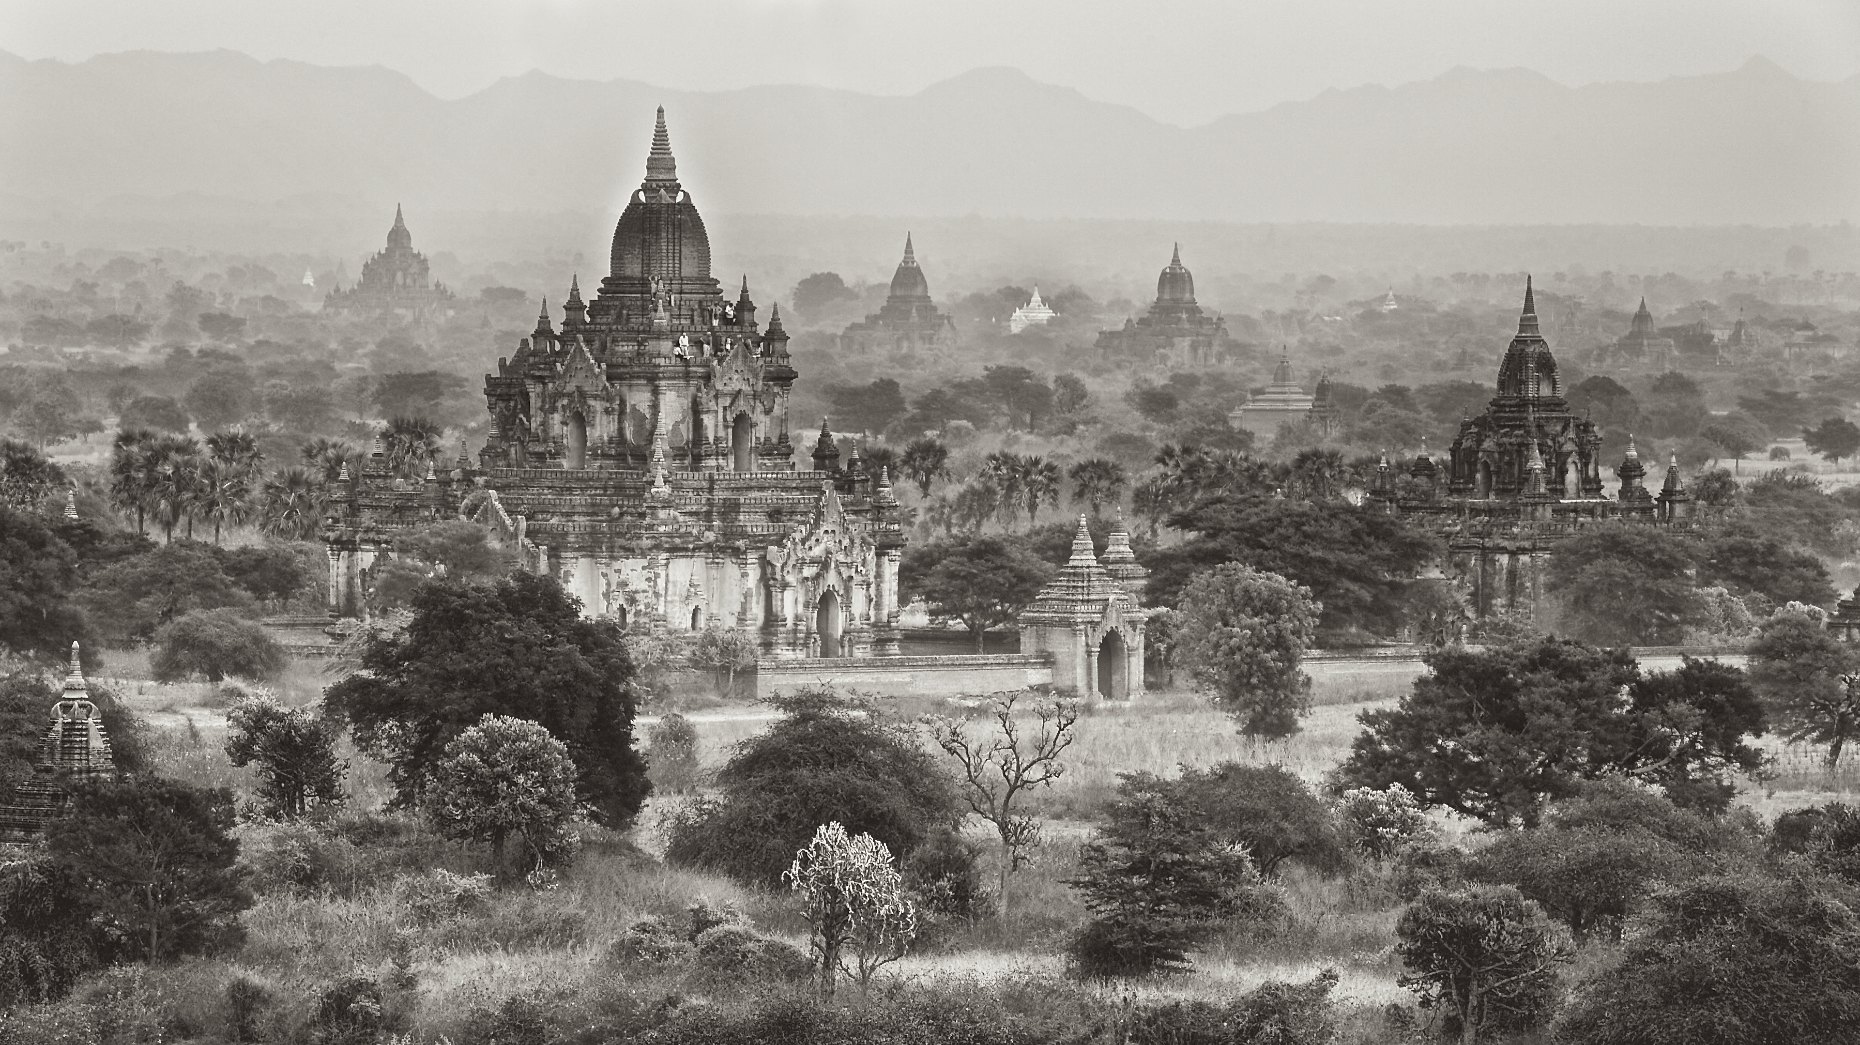 Burma Bagan landscape black and white